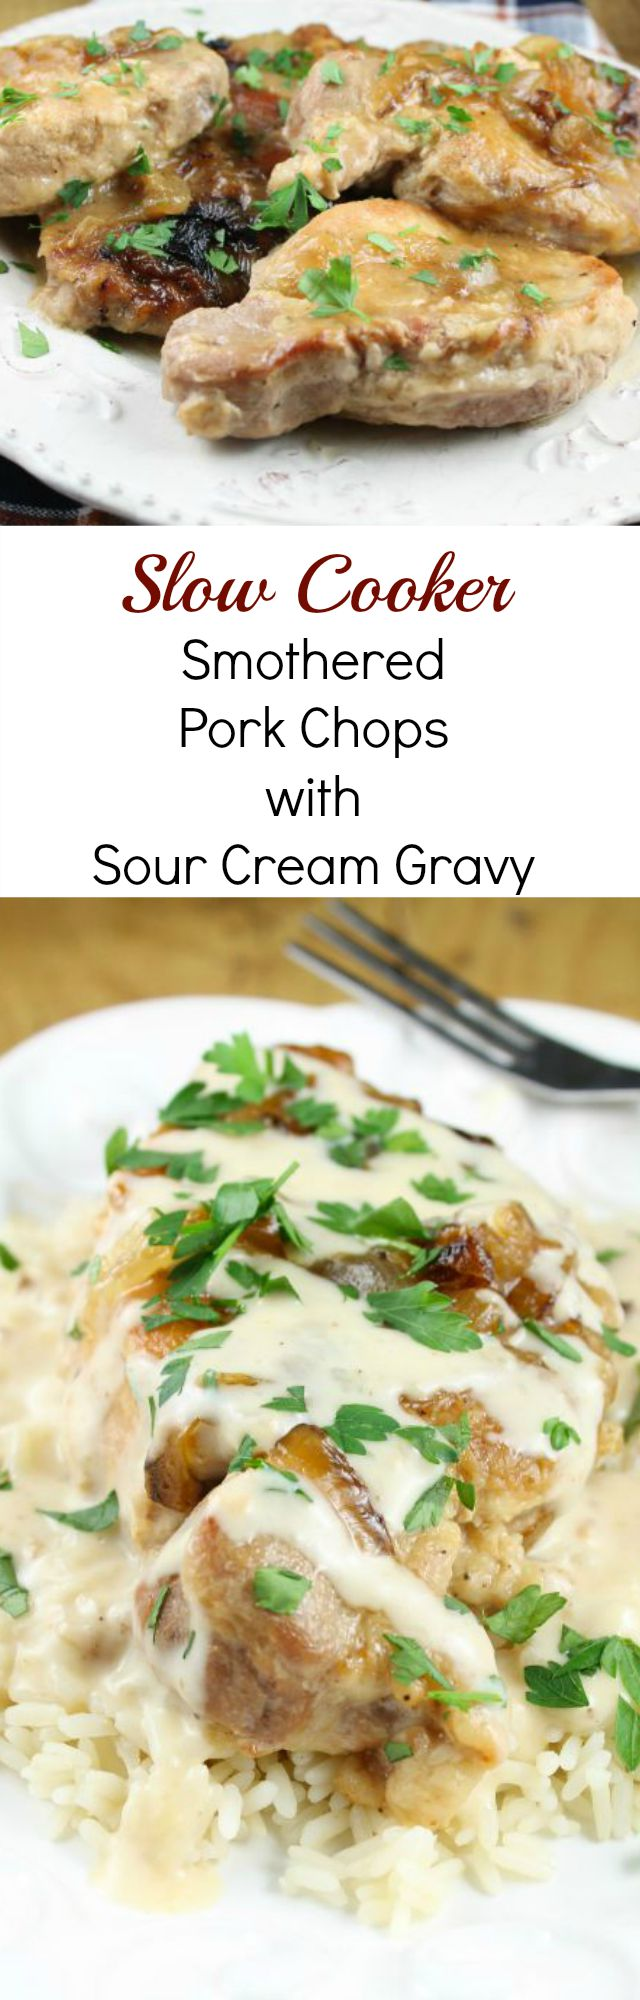 Slow Cooker Smothered Pork Chops with Sour Cream Gravy Recipe Found at missinthekitchen.com #ad